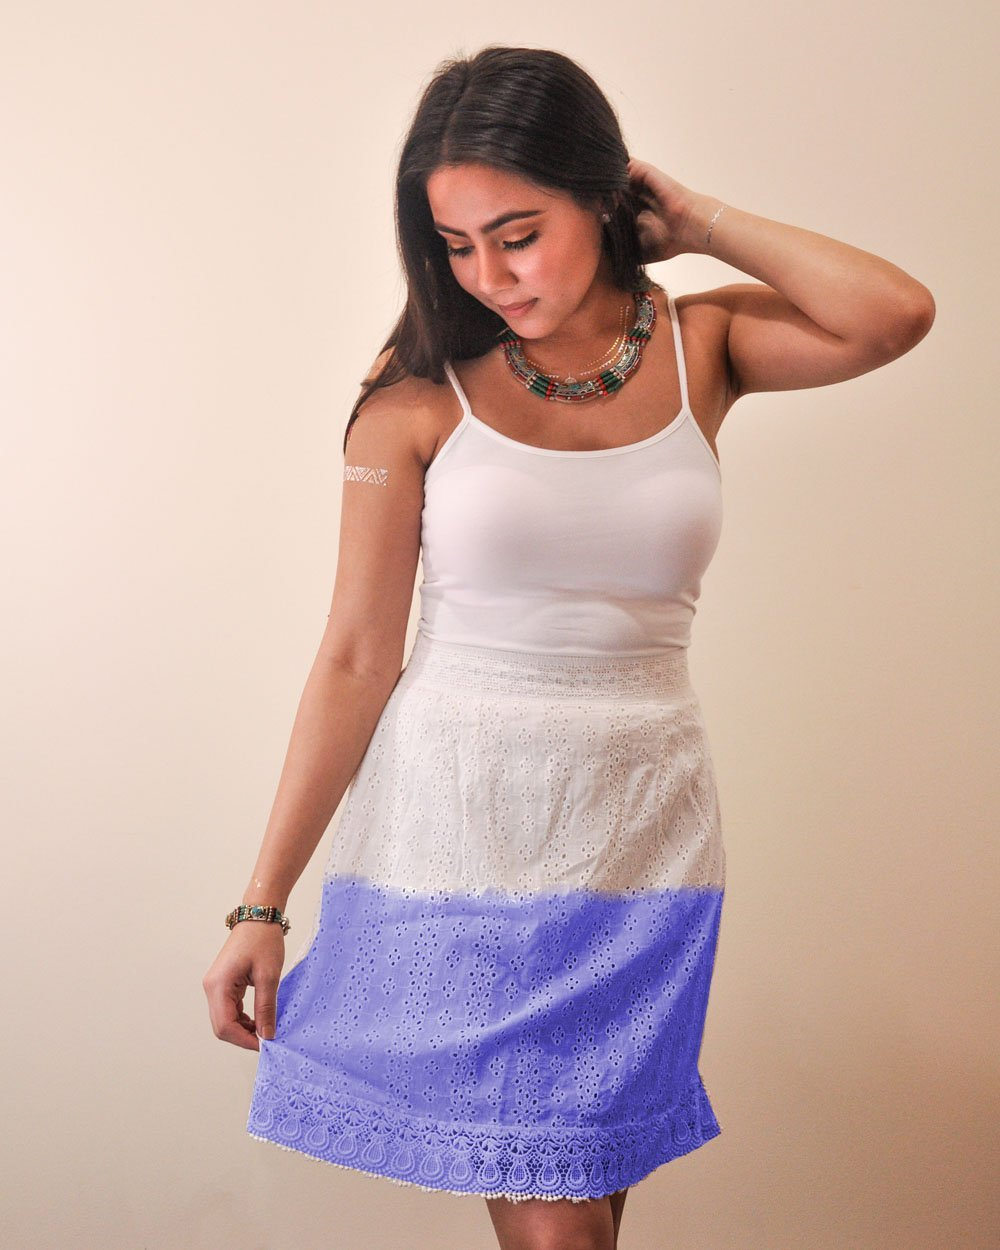 SIVALYA Ibiza Organic Cotton Eyelet Skirt 100% Organic Cotton Womens High Waist Mini Skirt | Blue White Ombre | Size Small